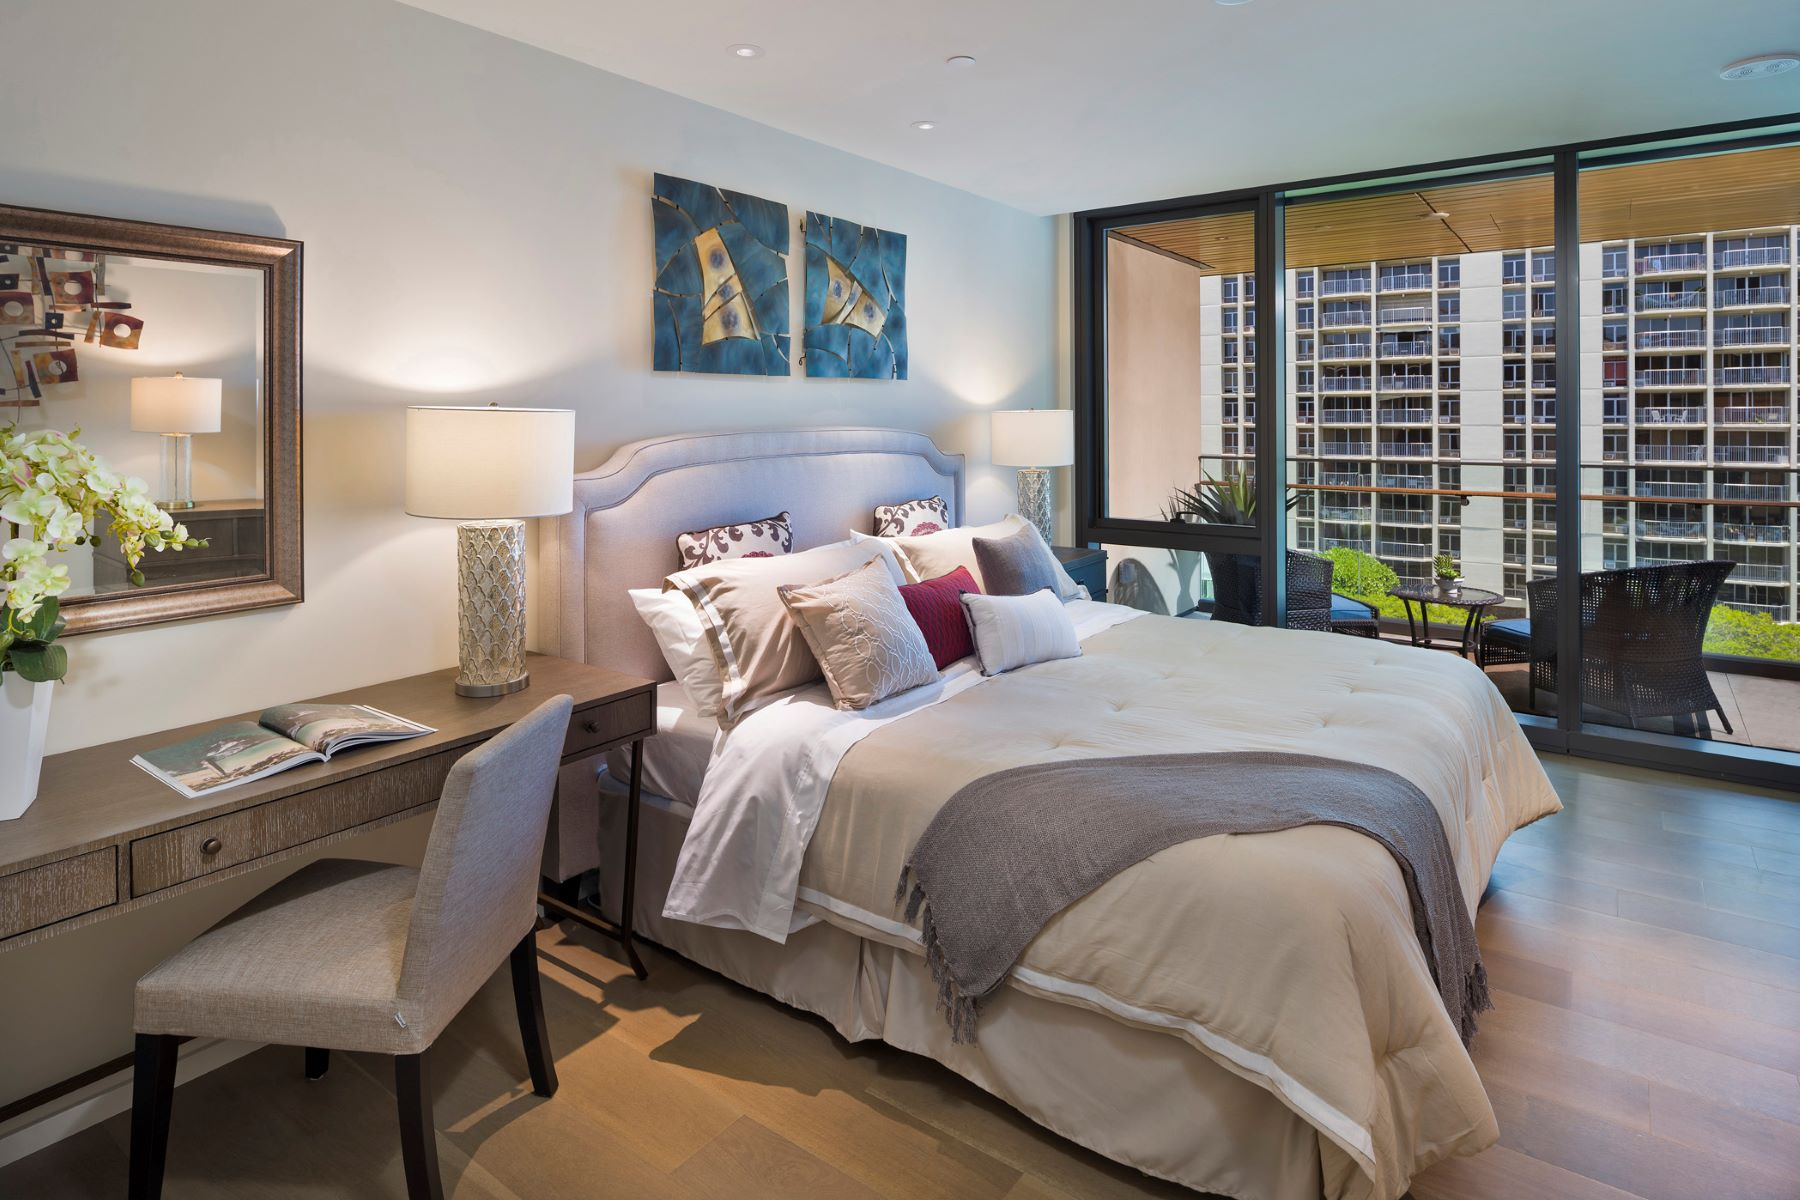 Additional photo for property listing at Opulent Ocean Views 1388 Ala Moana Blvd #1603 Honolulu, Hawaii 96814 United States